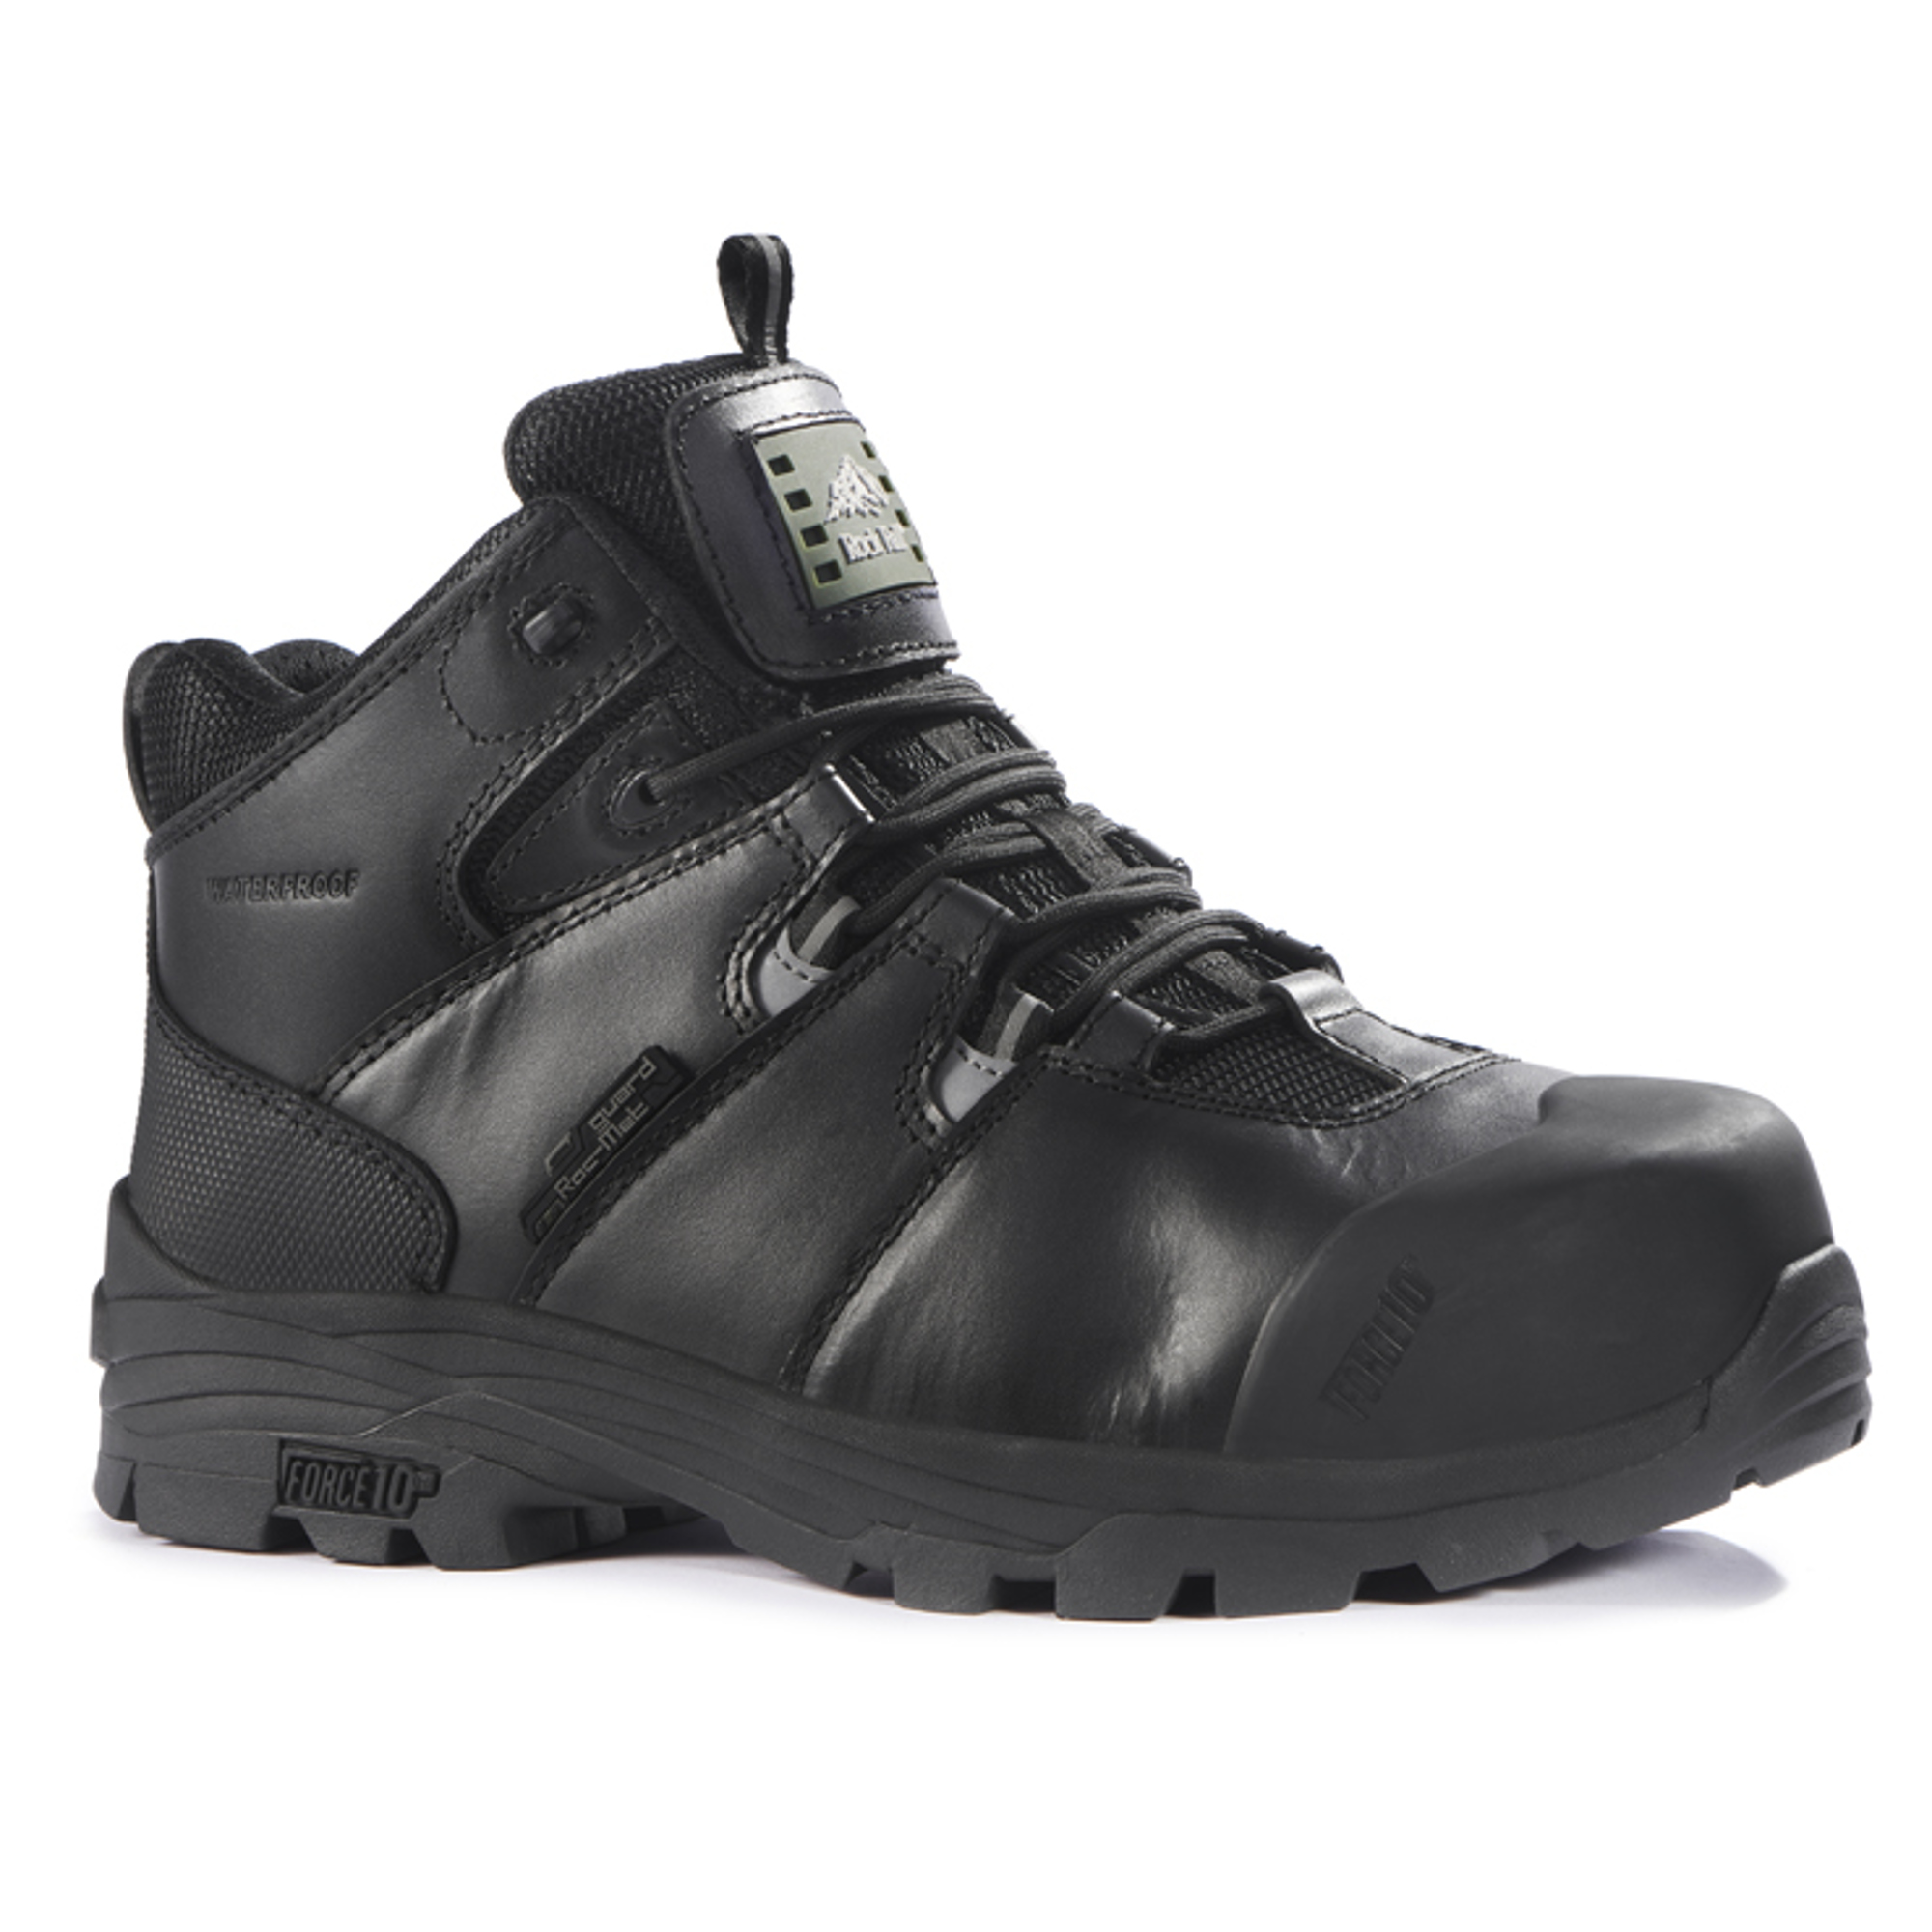 e7c697c55e9 Rock Fall TC3000A Rhyolite Metatarsal Protection Waterproof Safety Boot